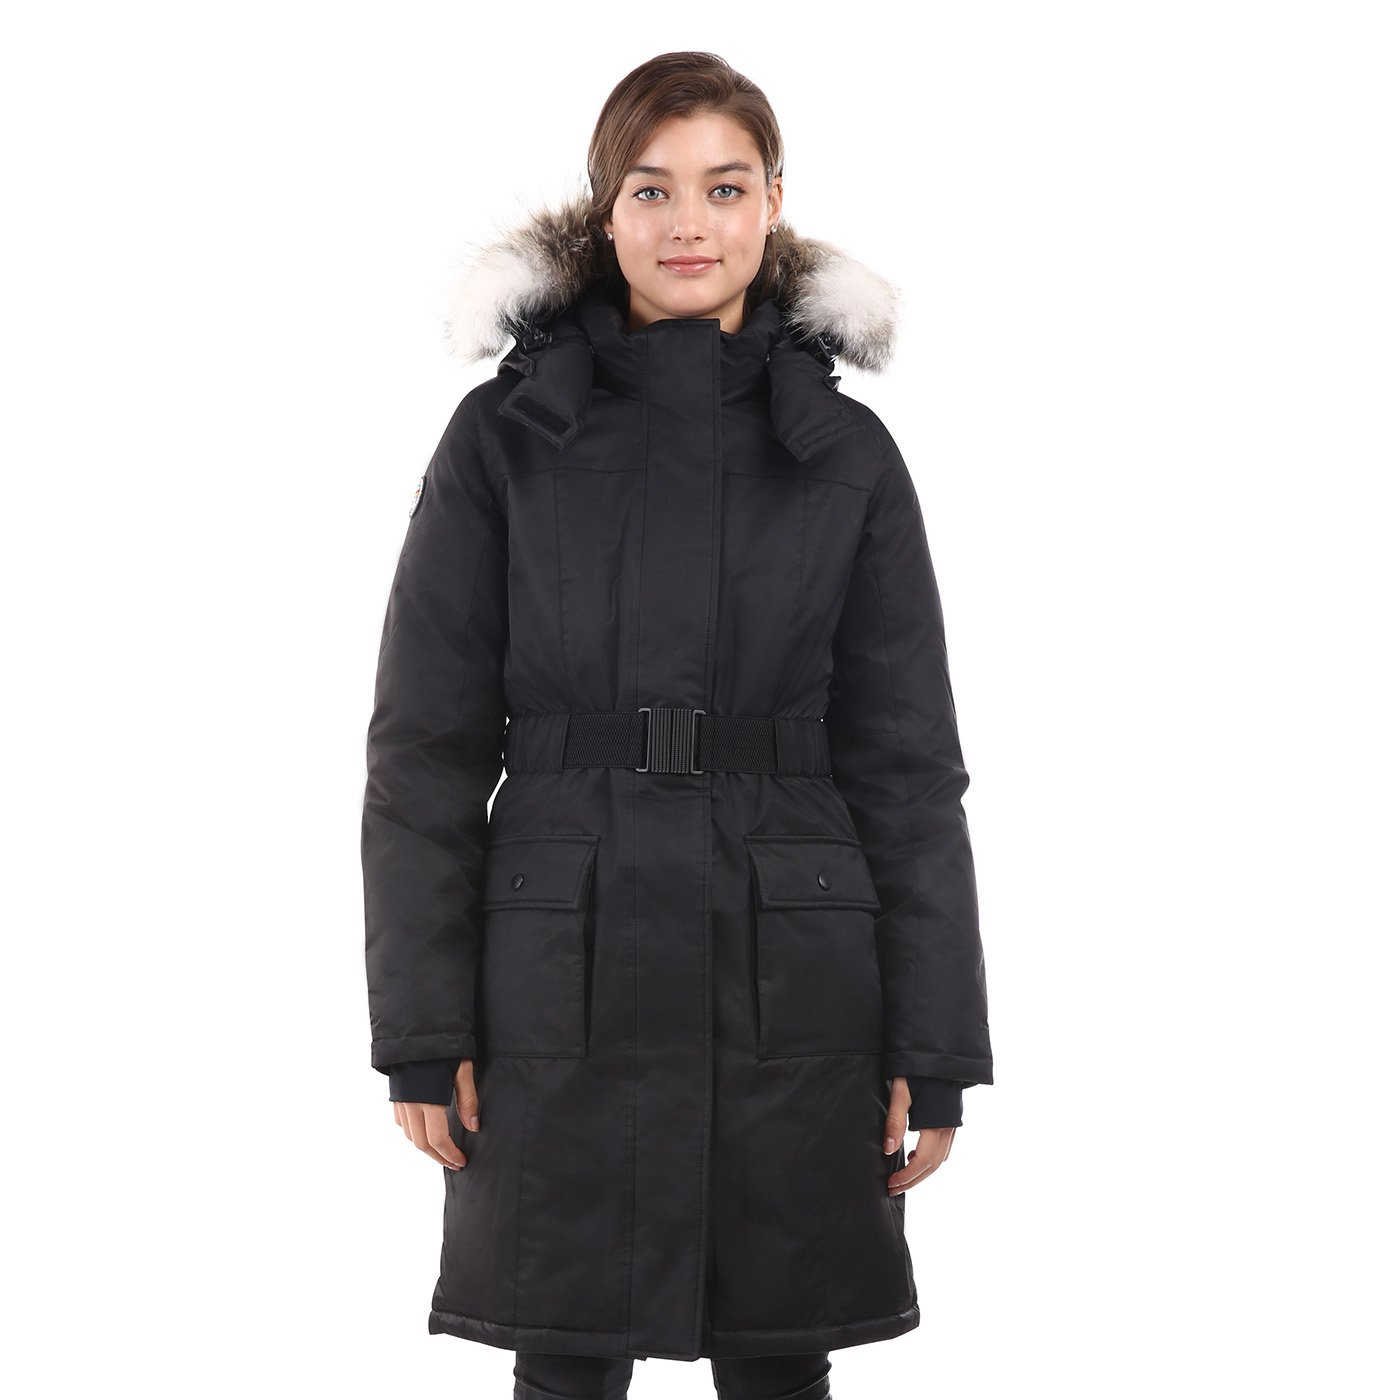 Triple F.A.T. Goose SAGA Collection | Estelle Womens Hooded Goose Down Jacket Parka with Real Coyote Fur (2XL, Black)